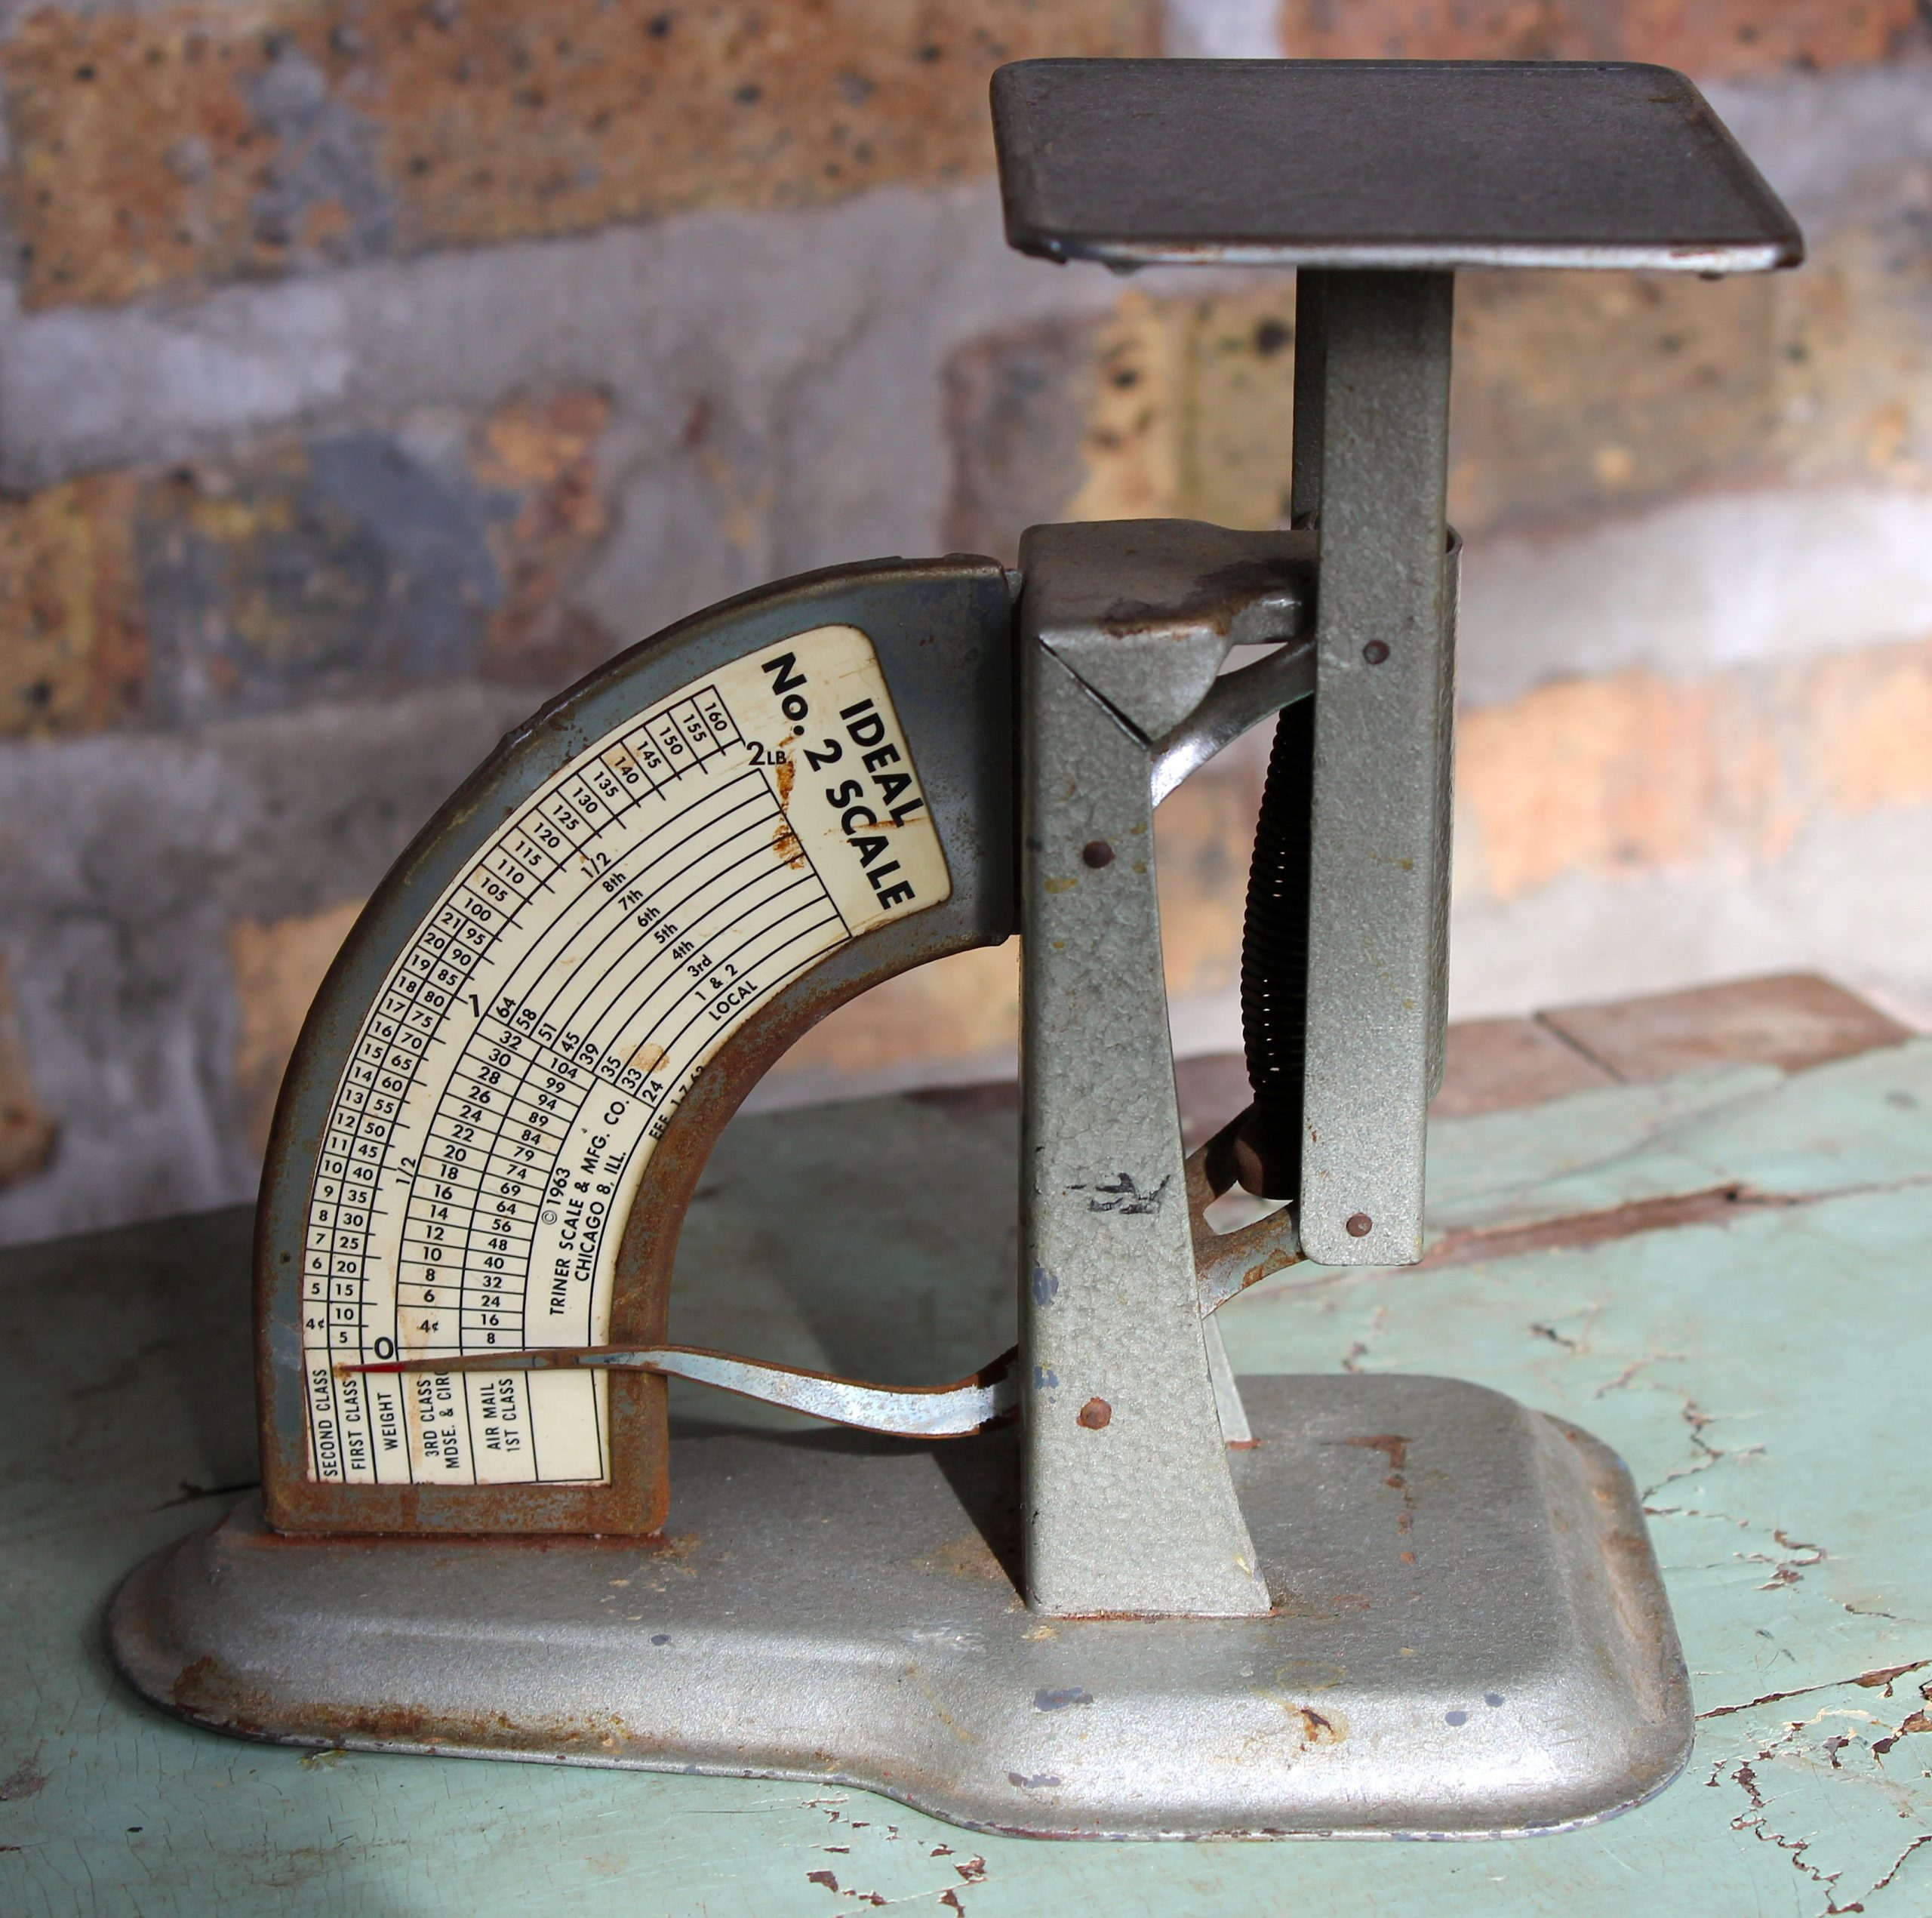 Ideal No. 2 Postal Scale by Triner Scale & MFG Co., 1963